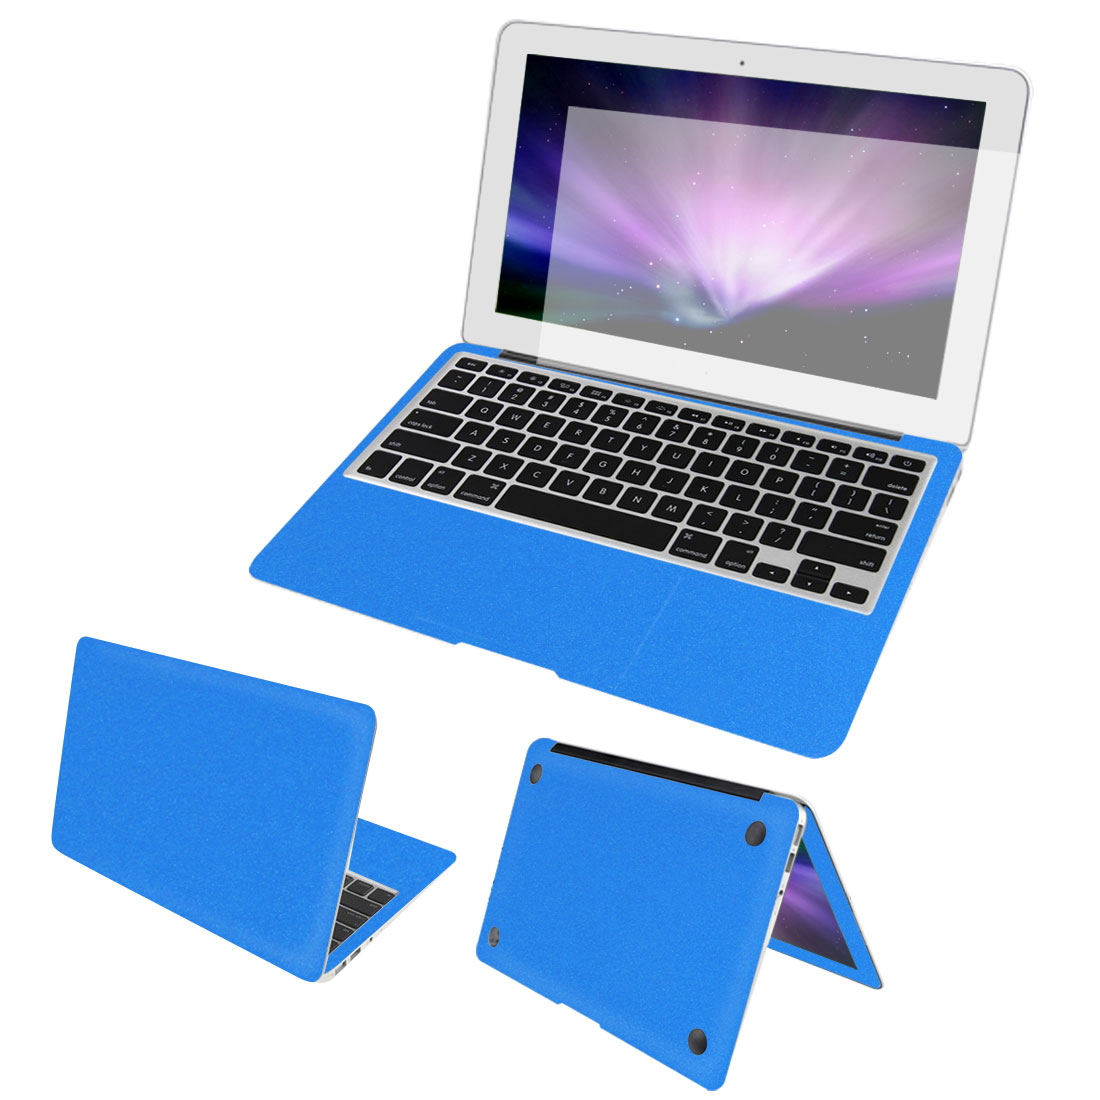 Blue-Full-Body-Wrap-Protector-Decal-Skin-Screen-Guard-for-Apple-Macbook-Pro-15